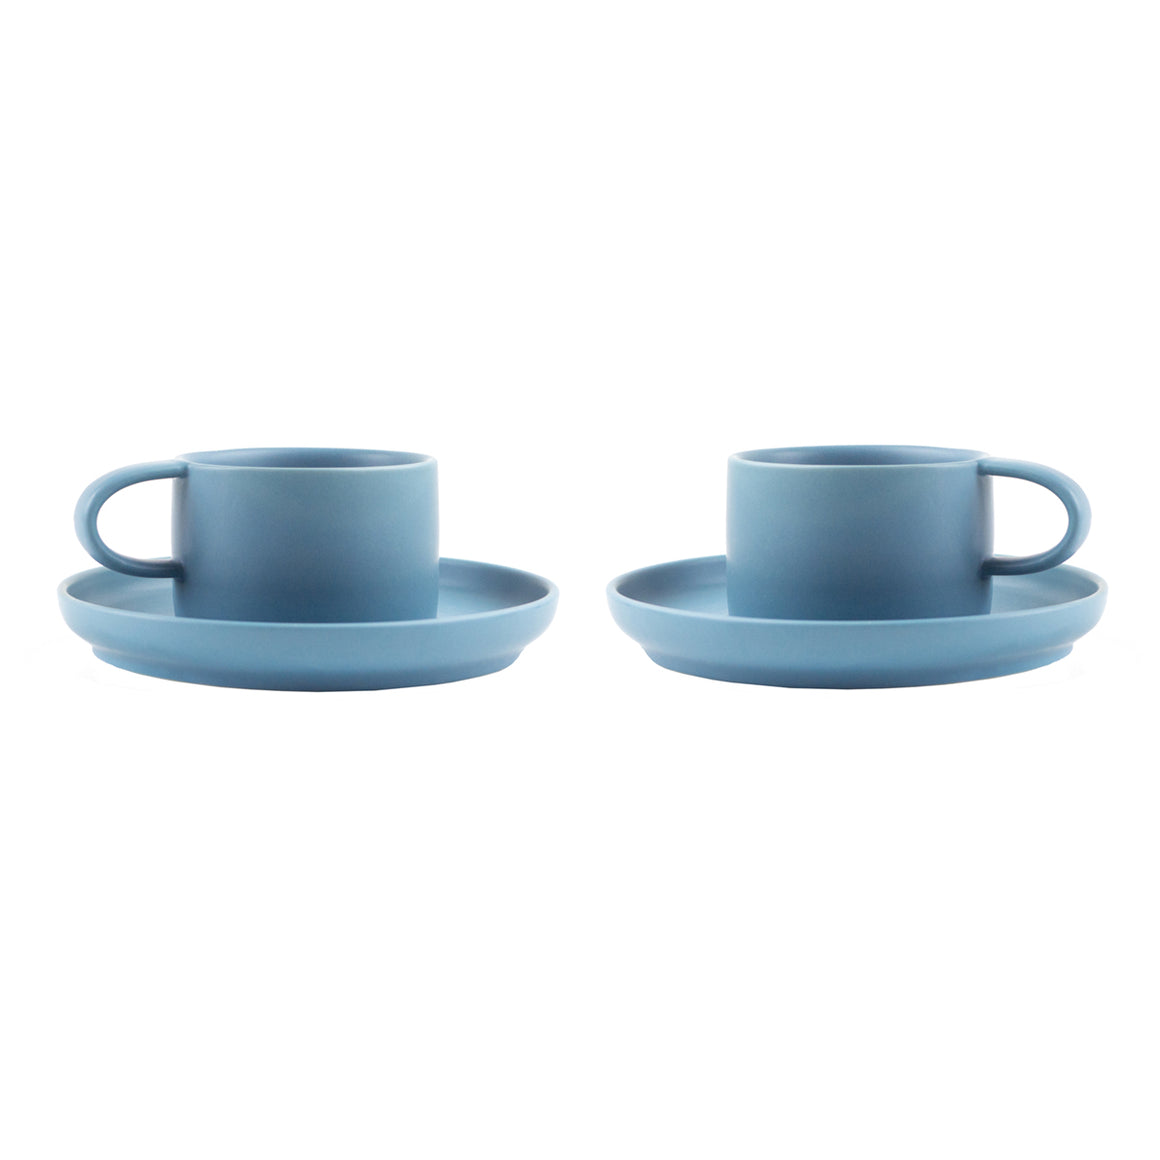 Nordic Design Cup & Saucer Set, 2 pack - Light Blue